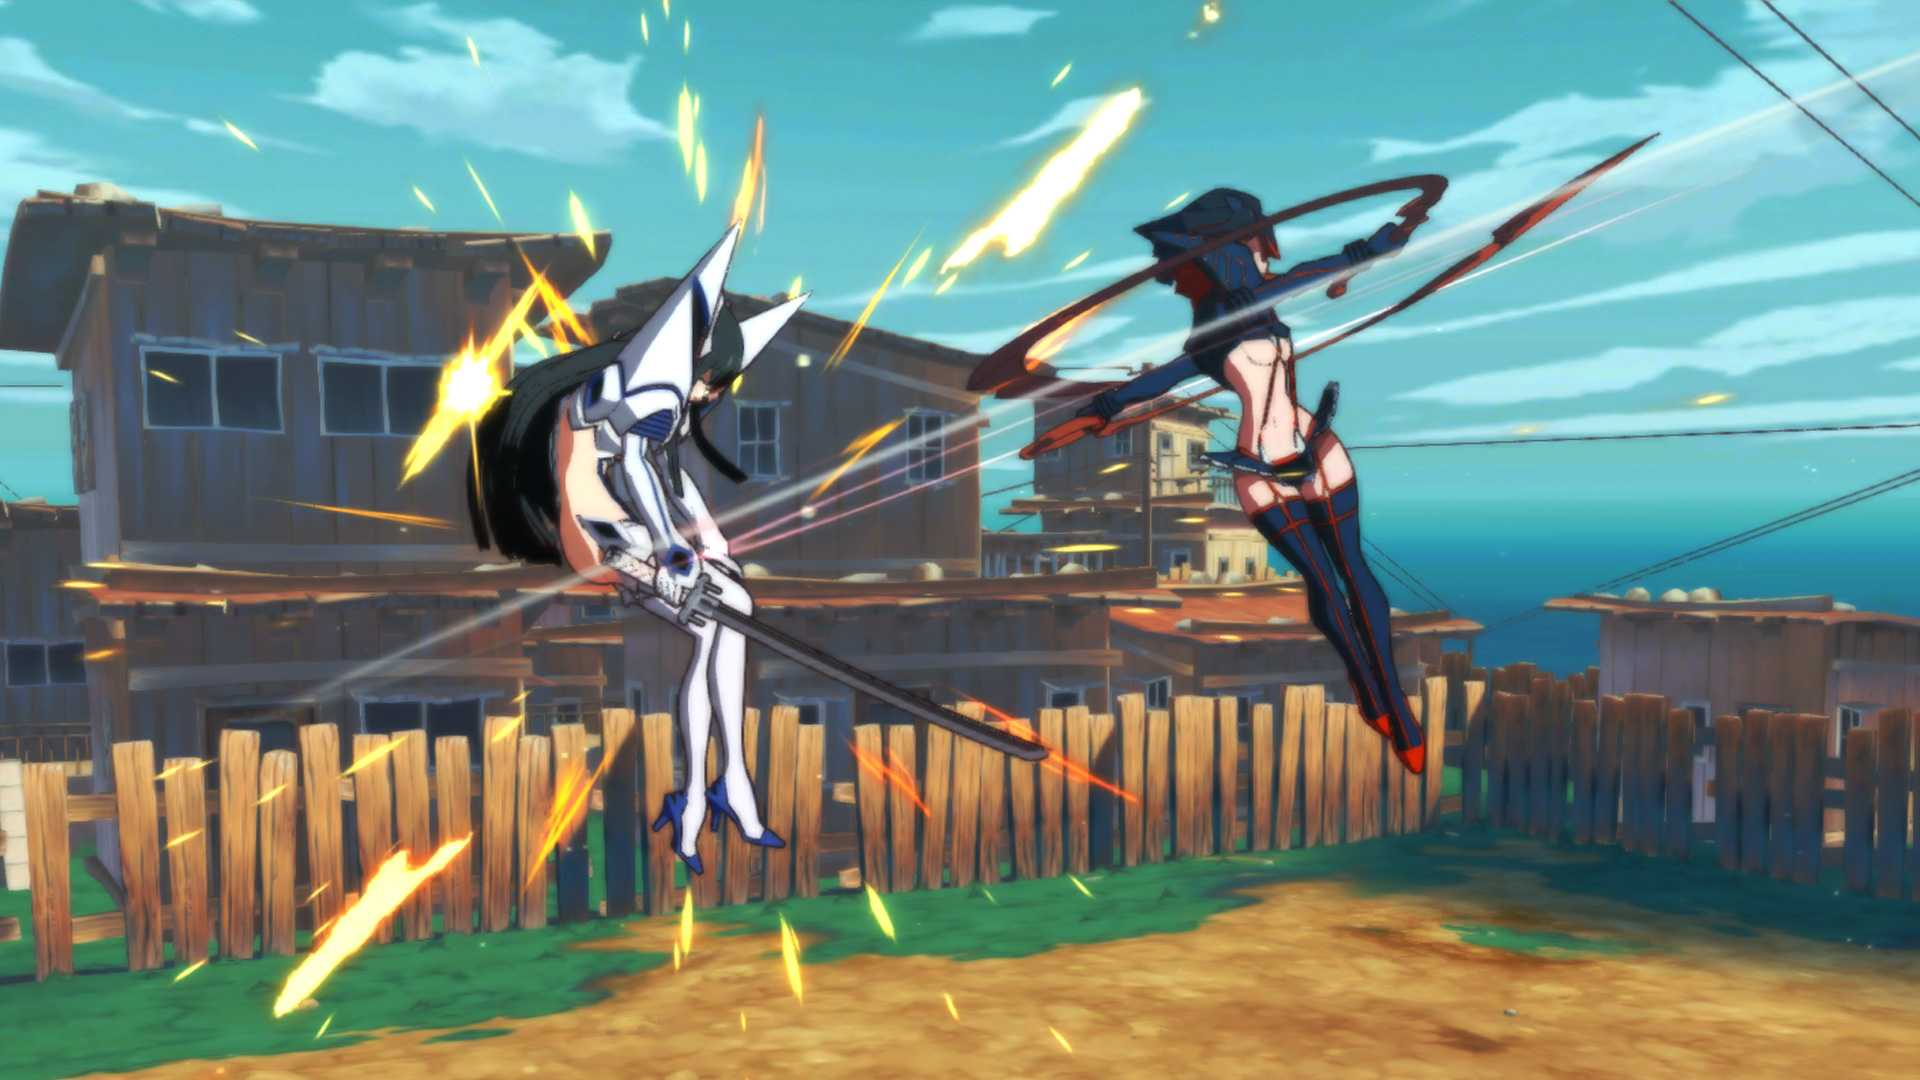 Kill la Kill the Game IF torna a mostrarsi con nuove immagini